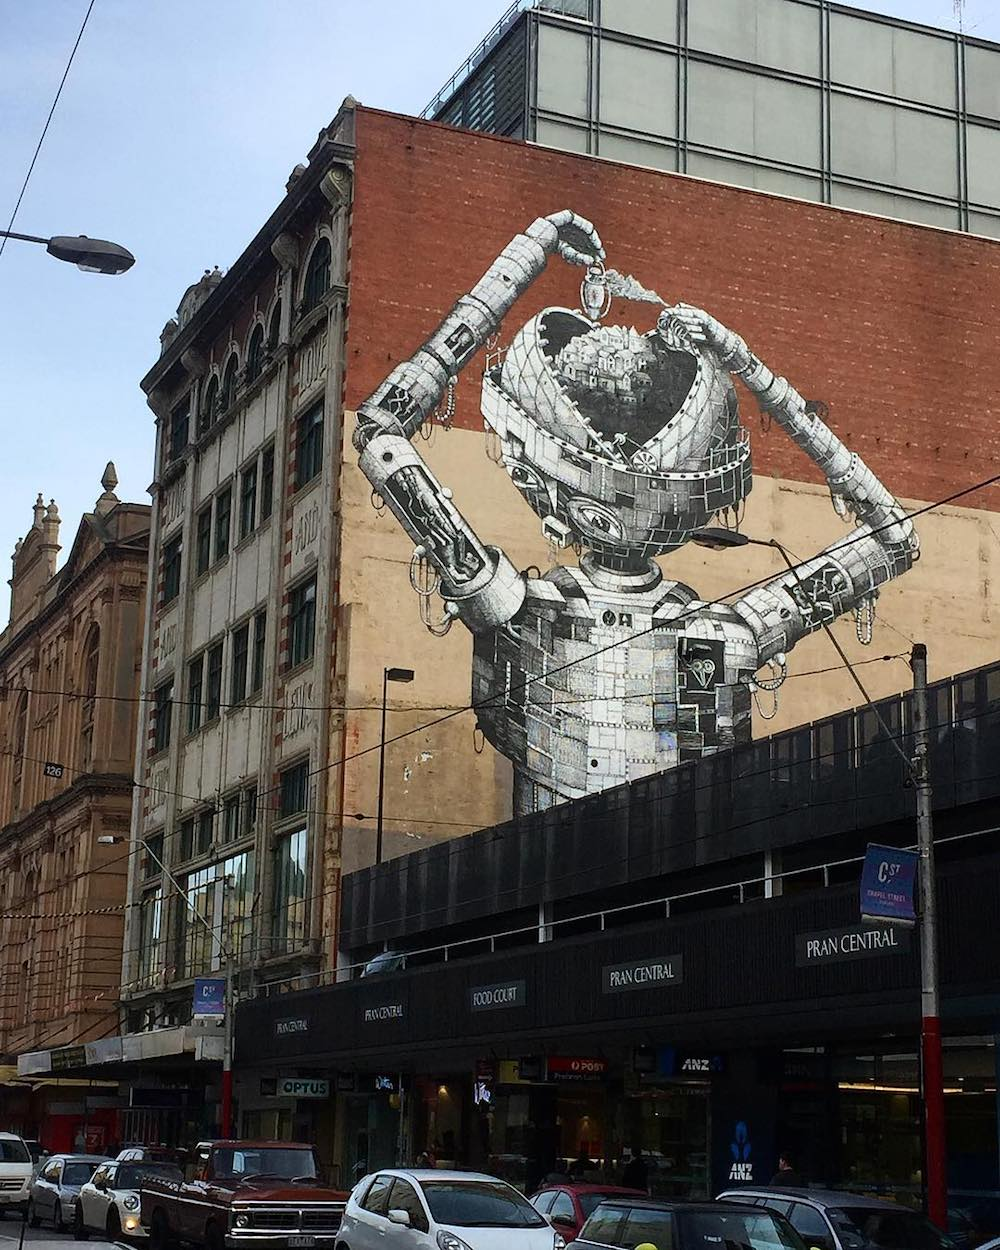 This past month, Sheffield-based artist Phlegm ( previously ) revealed his latest mural, a 5-story